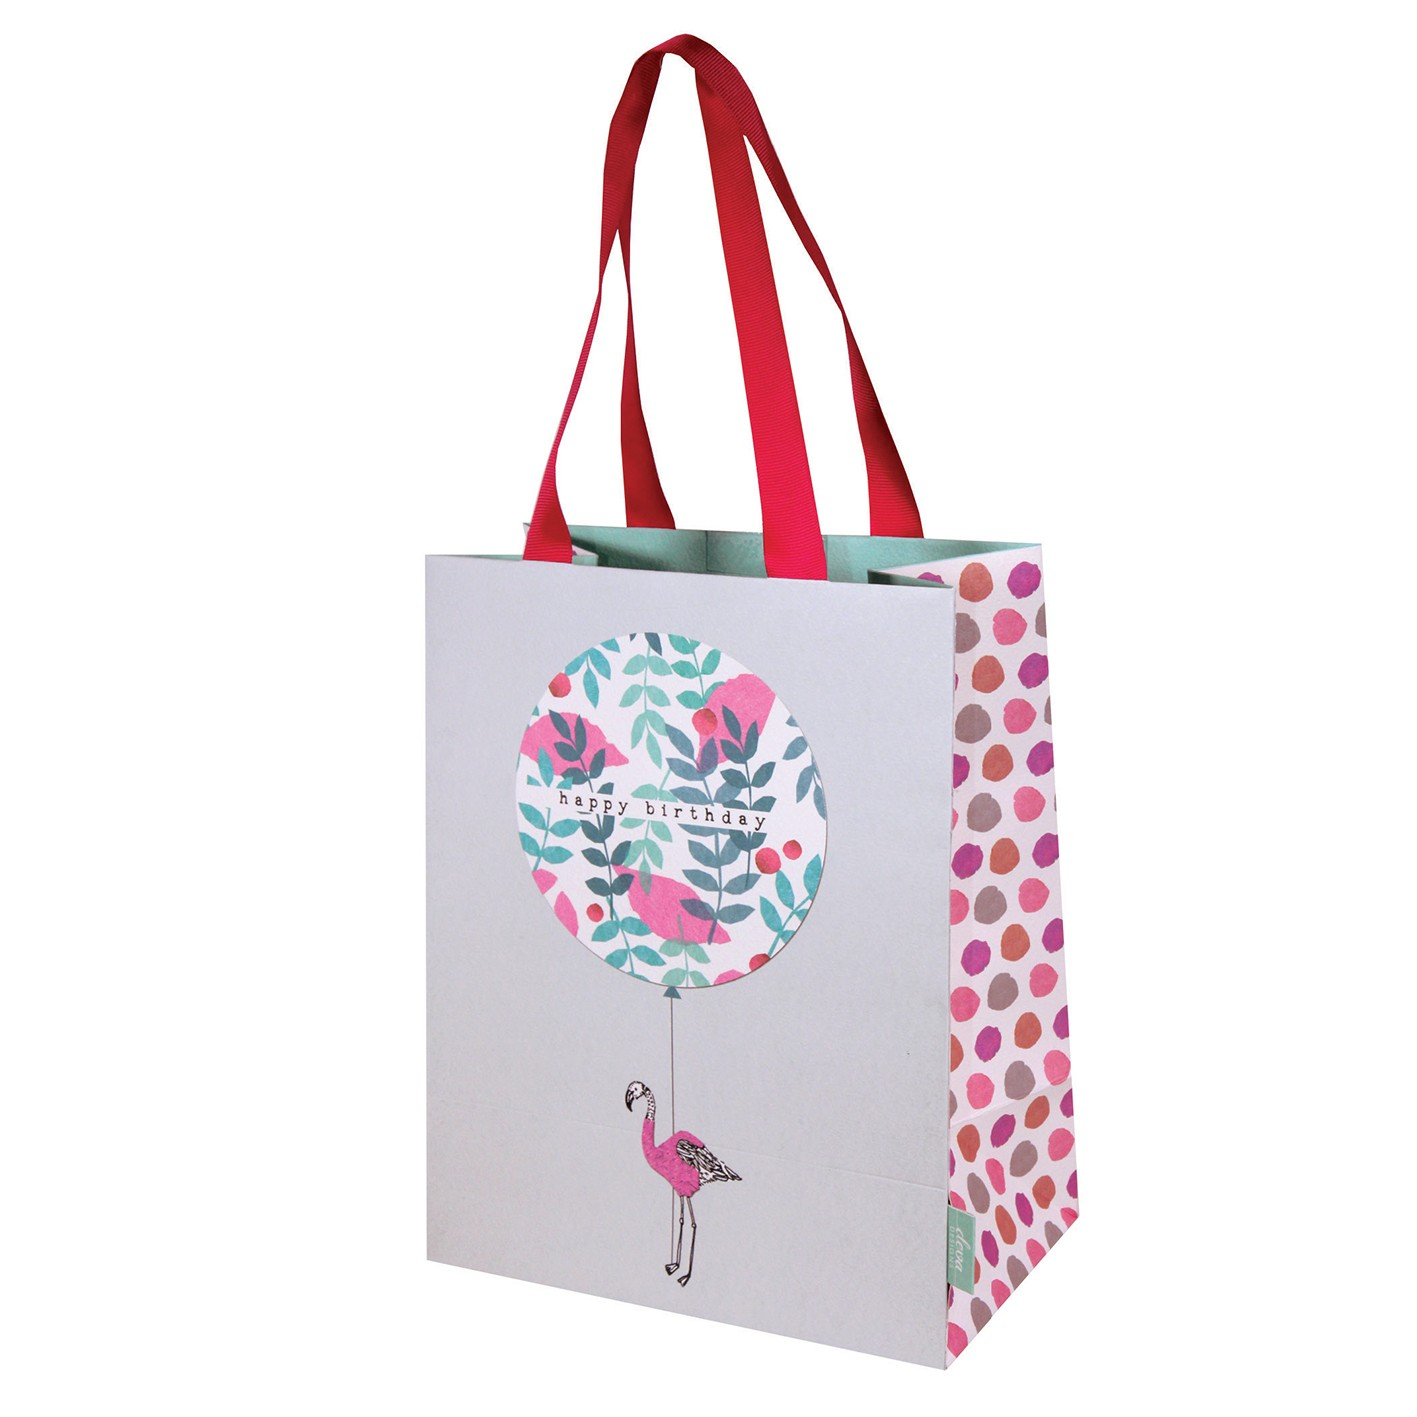 stop the clock birthday flamingo gift bag cards and gift wrap shop e42fba9ae